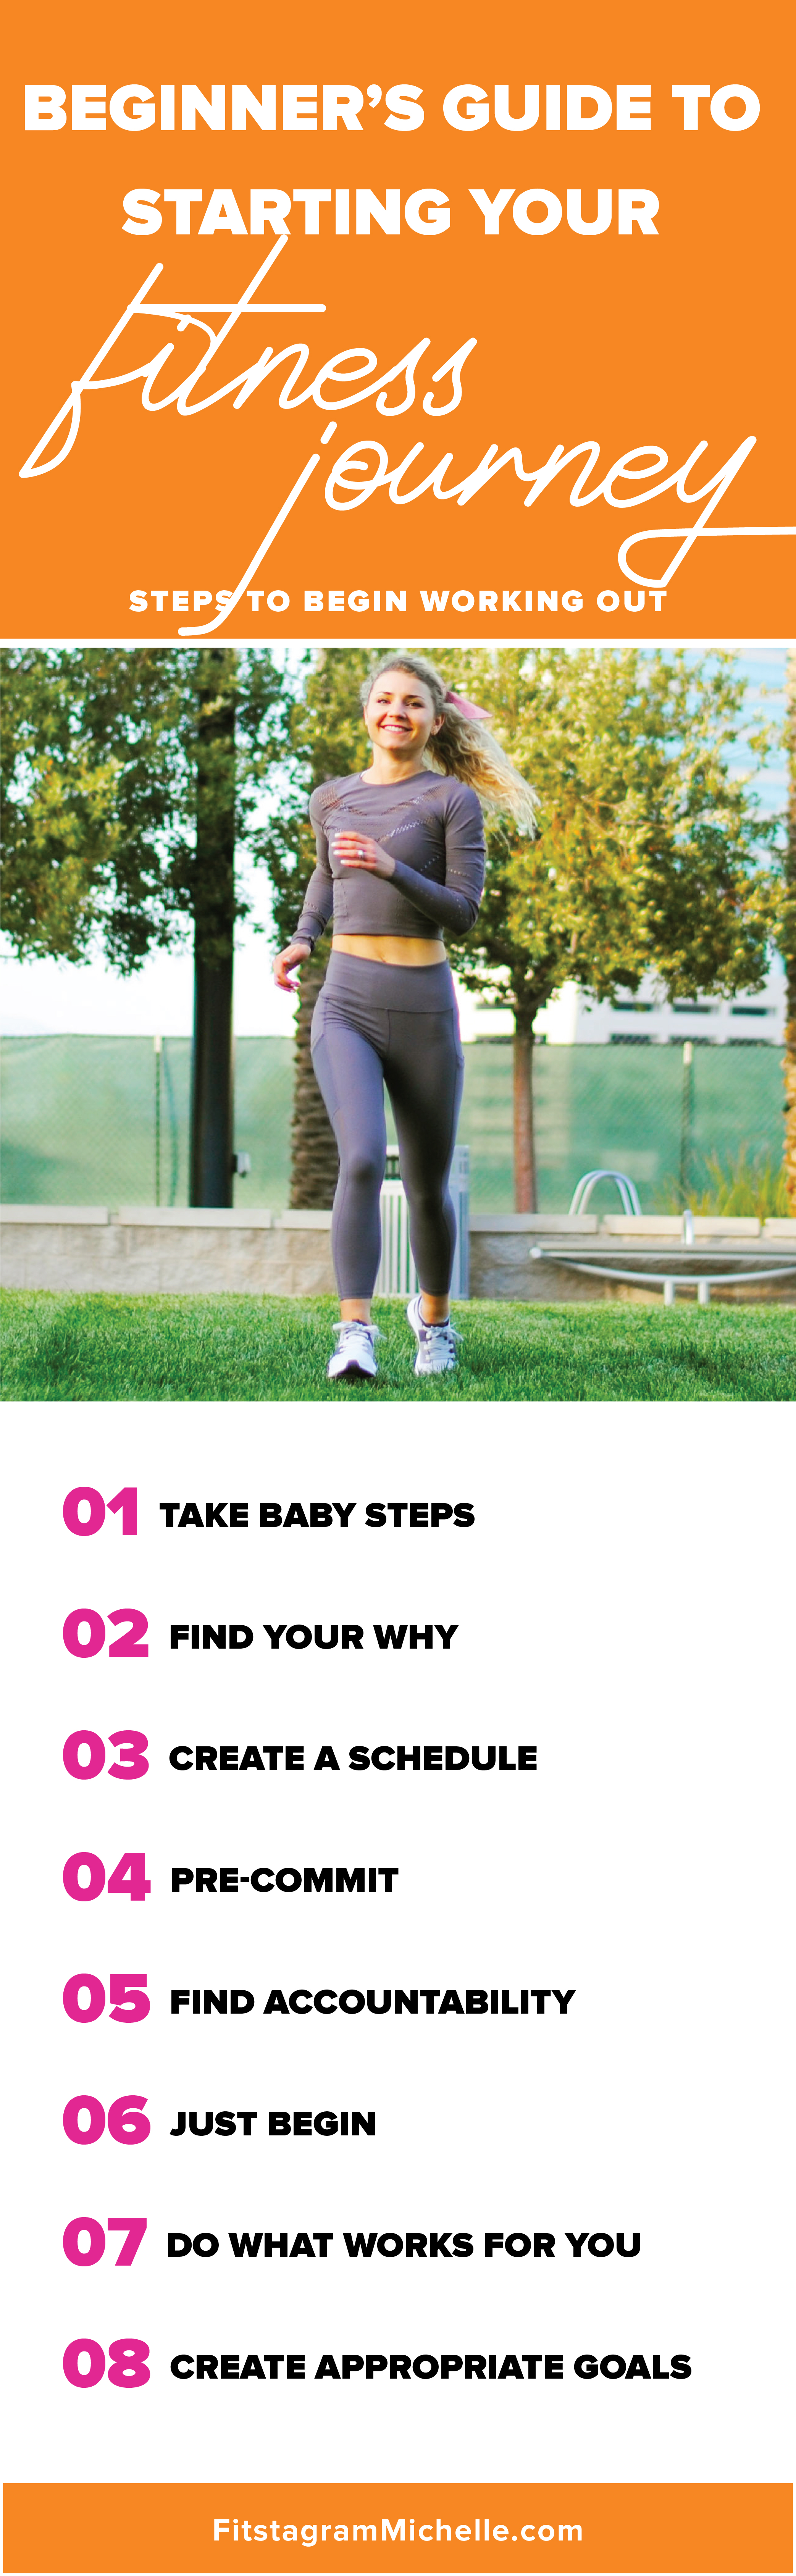 Beginner's guide to starting your fitness journey. Follow these tips to learn how to begin working out and ensure you are best equipped for results.